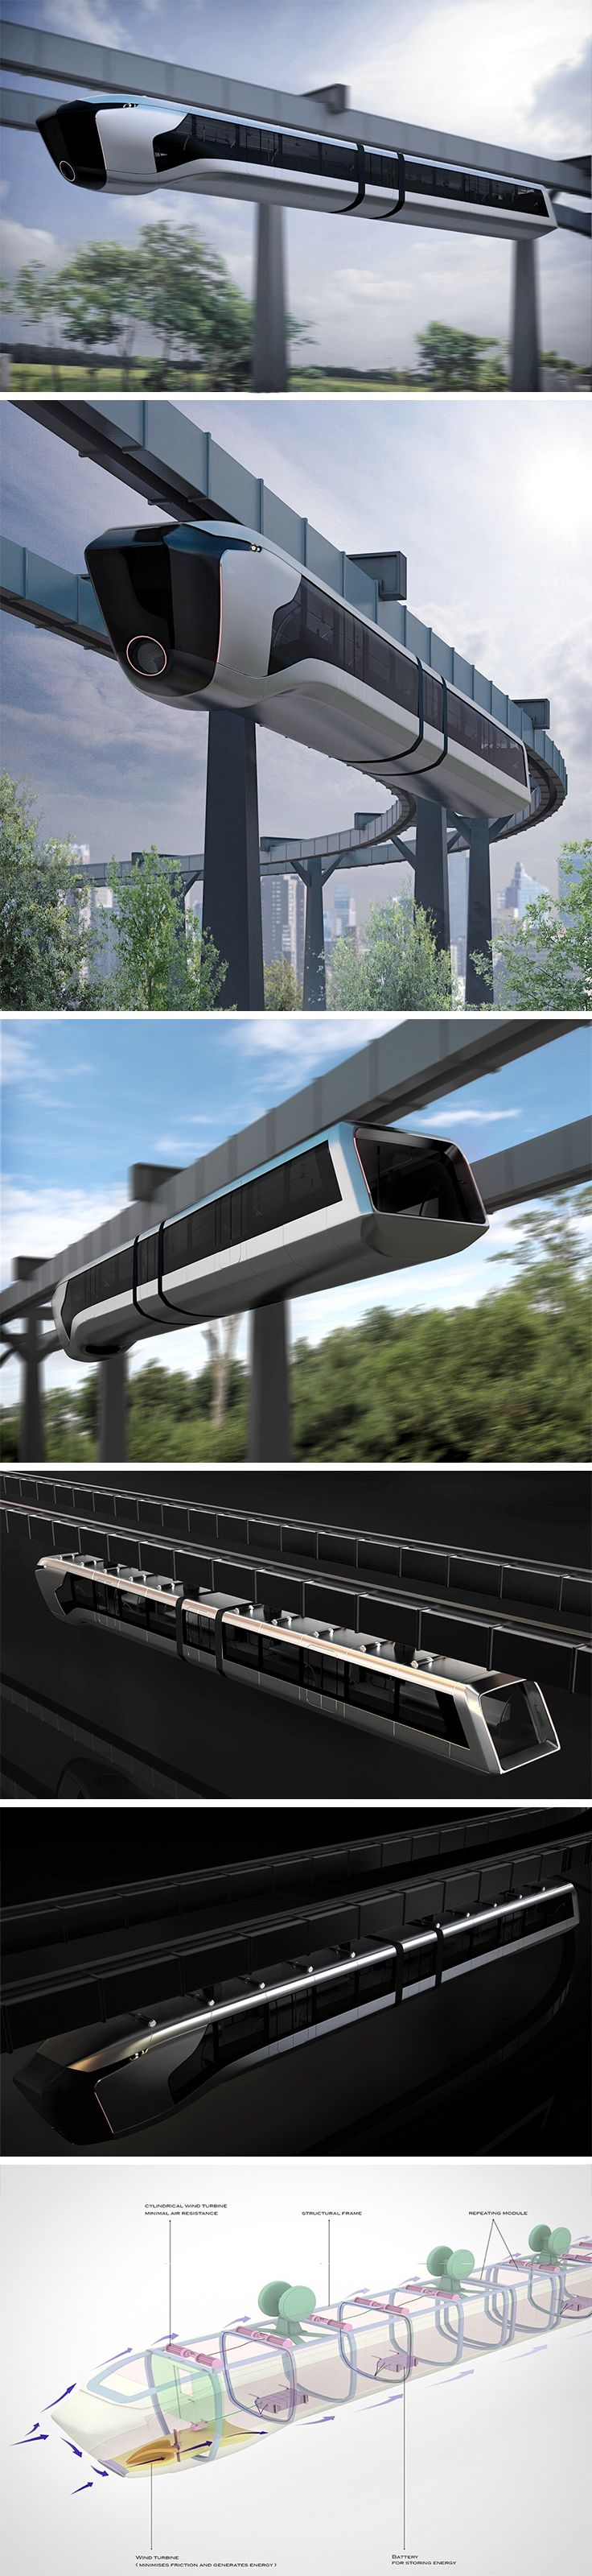 This suspended monorail vehicle concept presents additional functionality in the form of harnessed wind energy. Most noticeably, a large wind turbine at the front transfers air at the nose under the train while also pushing it upward. Other smaller turbines placed throughout the body generate supplemental energy to power internal electronics, wi-fi, power outlets for riders, as well as interior/exterior lighting.